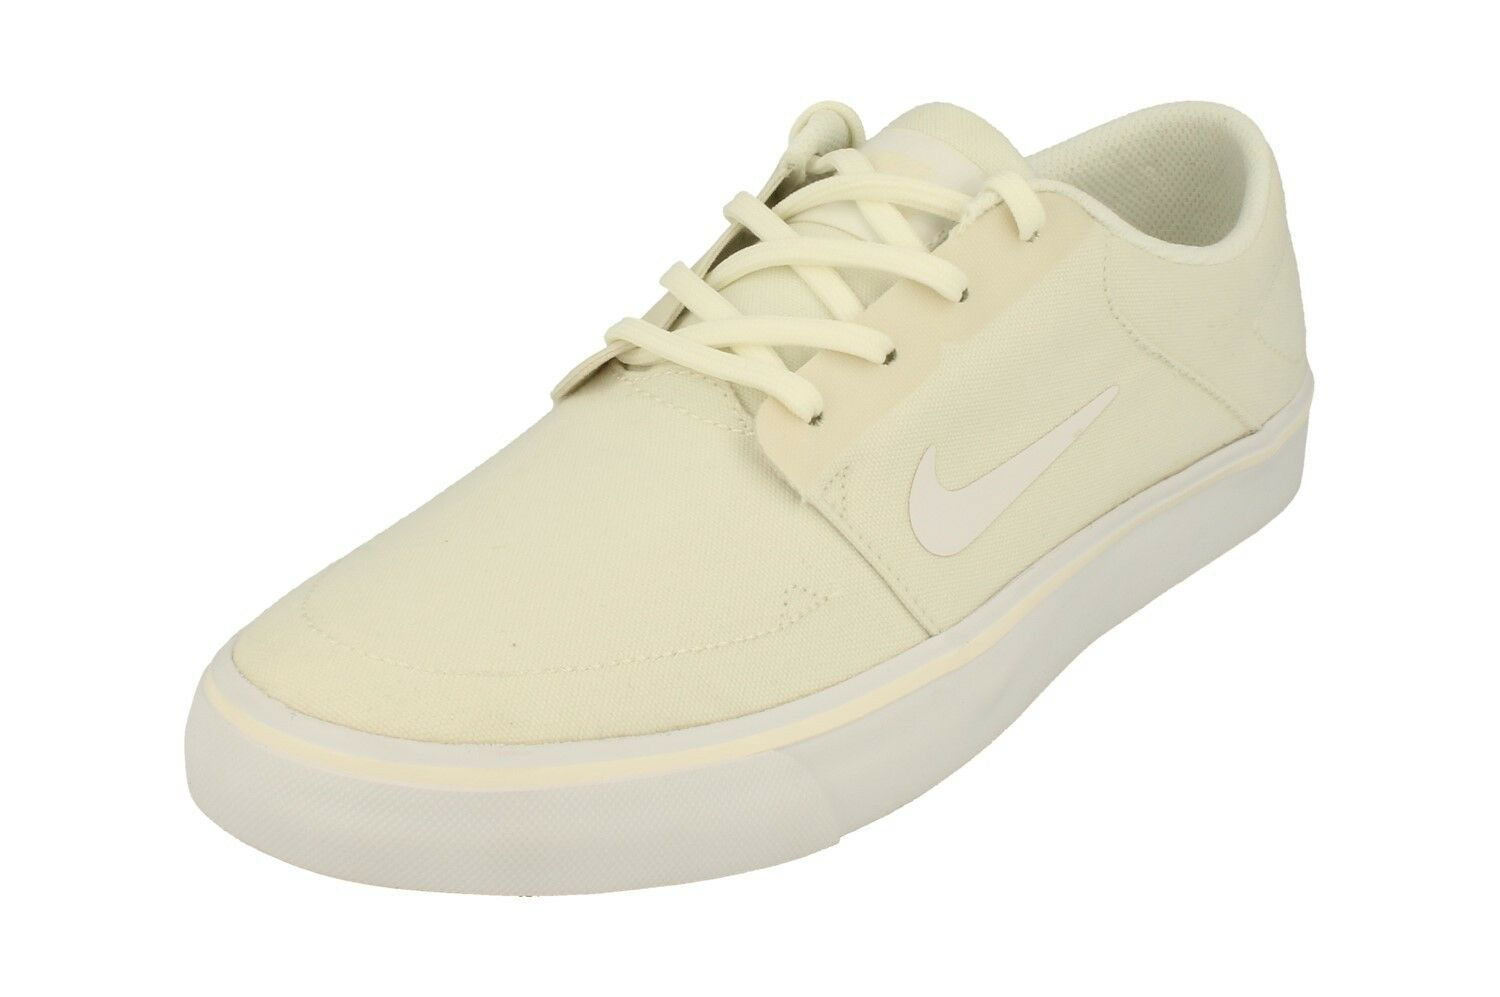 Nike Sb Portmore Canvas hommes Trainers 723874 Sneakers Chaussures 111